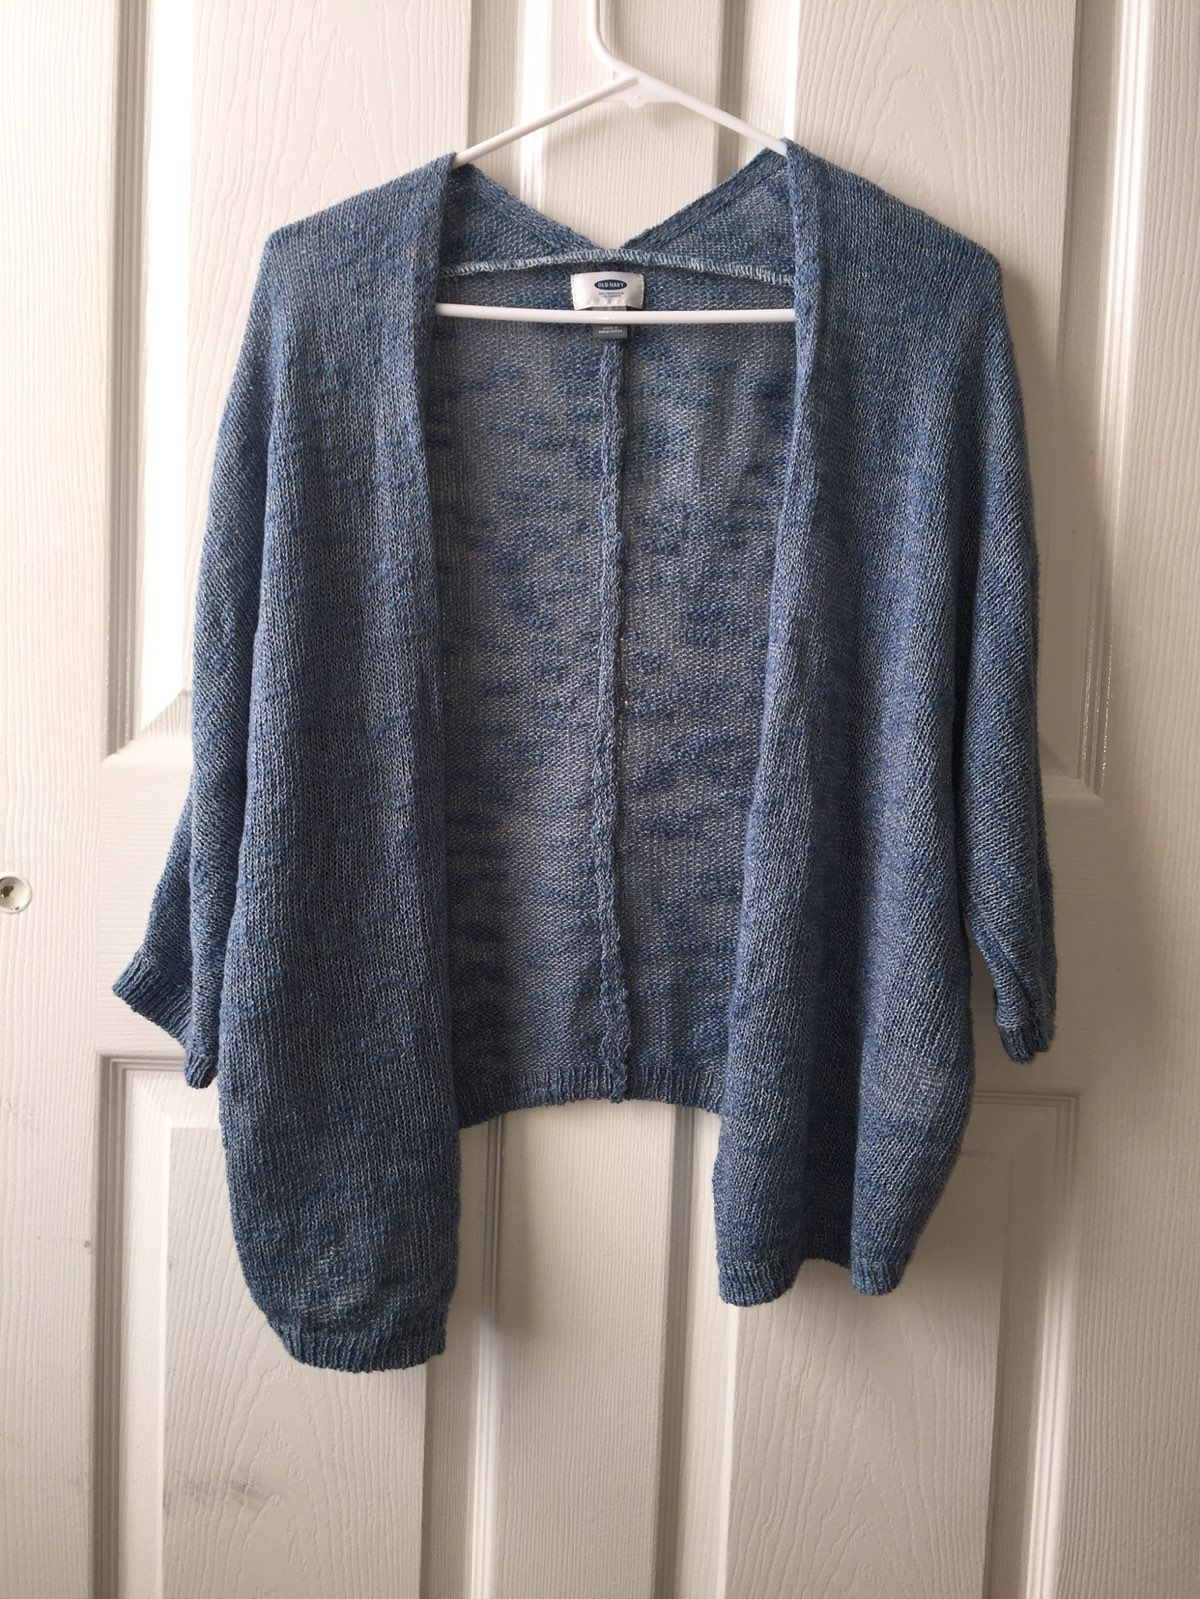 OLD NAVY BLUE CARDIGAN SIZE S - Mercari: BUY & SELL THINGS YOU LOVE